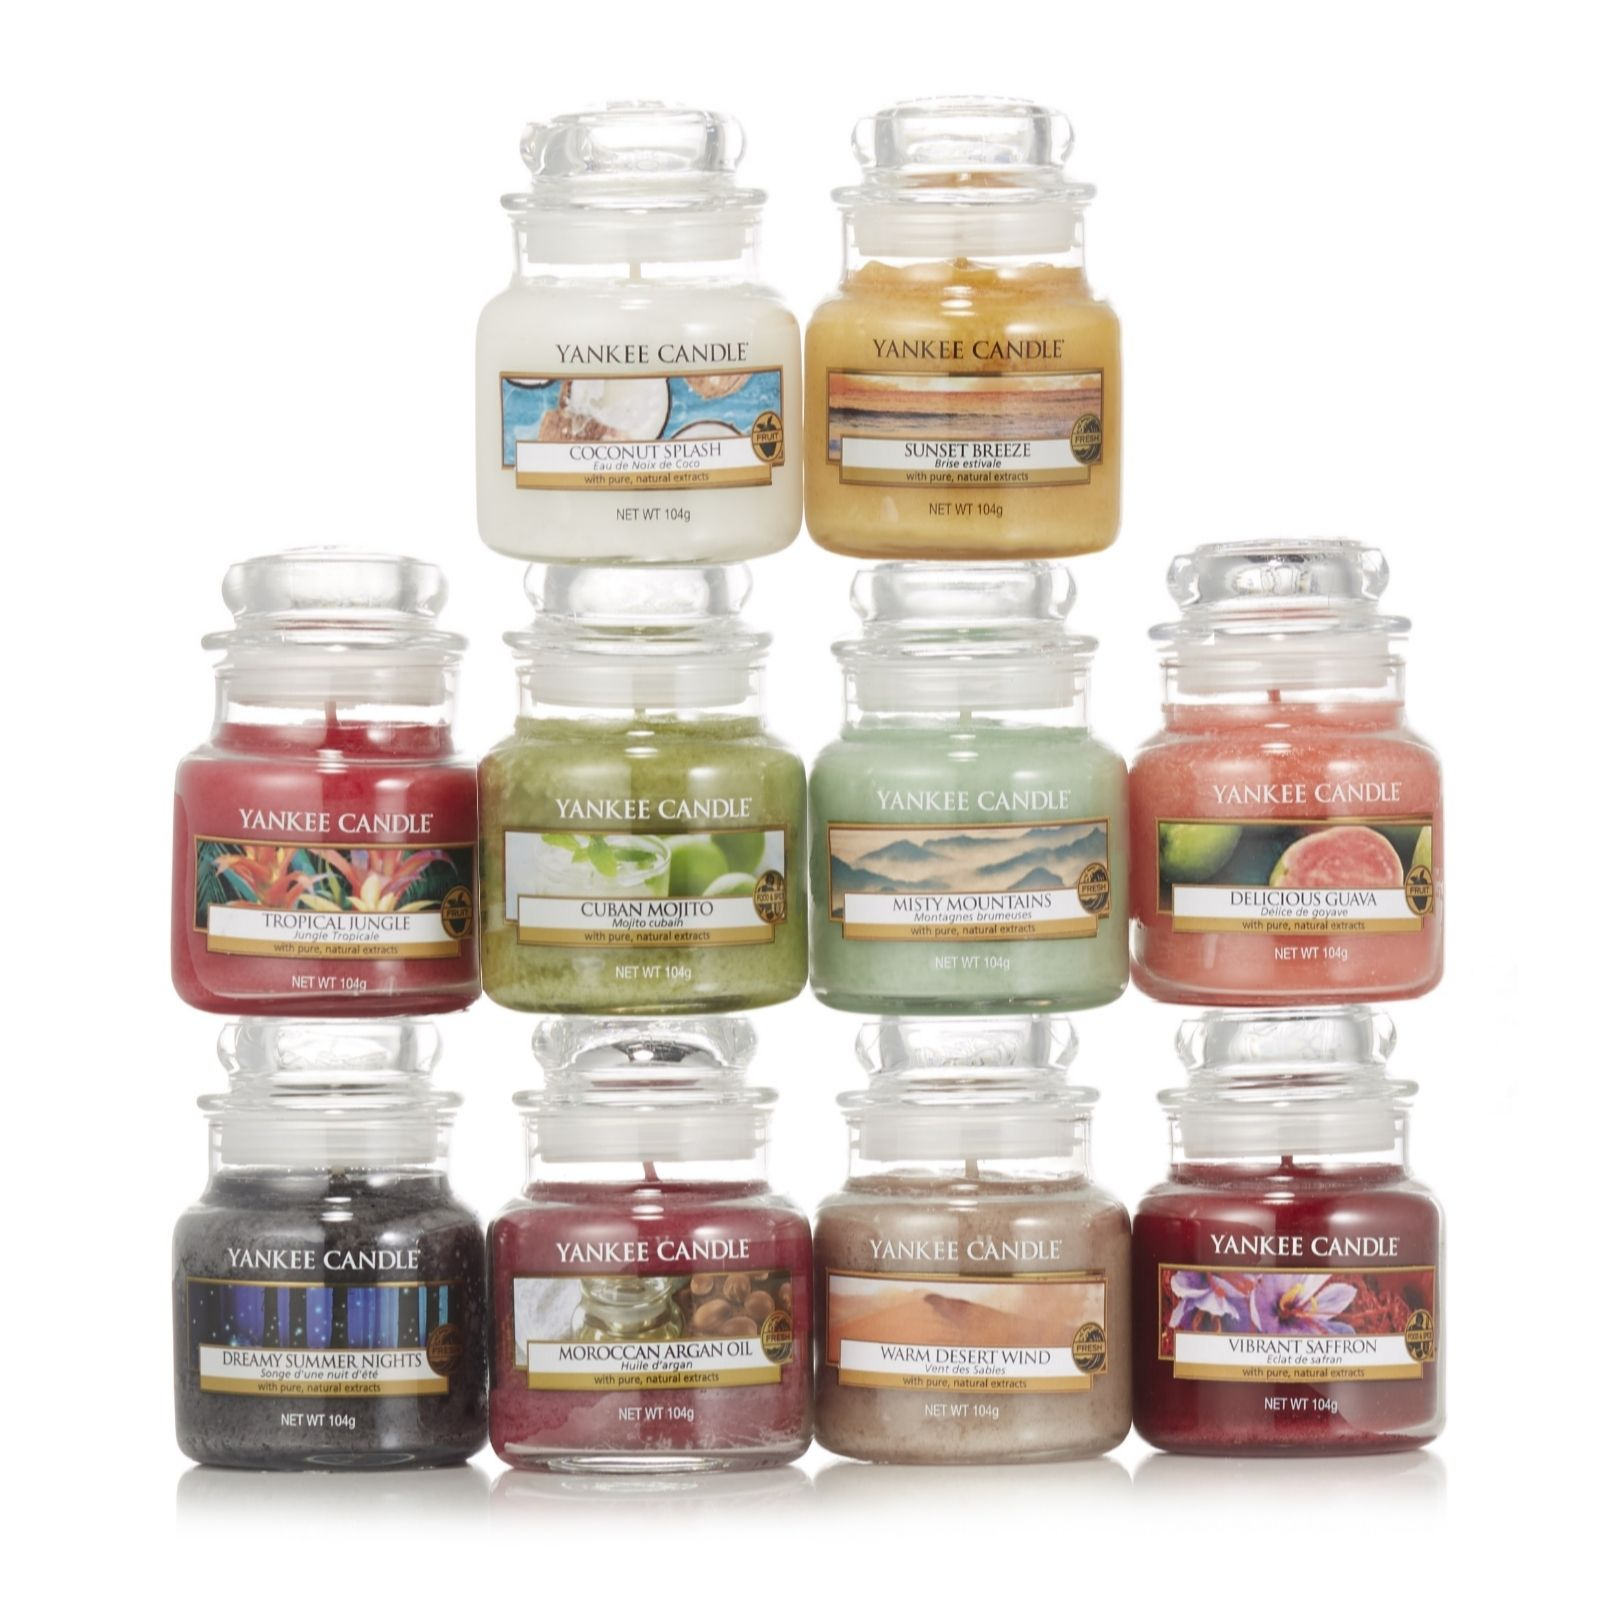 Yankee Candle Small Jar 40 Hr Burn Time Misty Mountains 2018 Fragrance